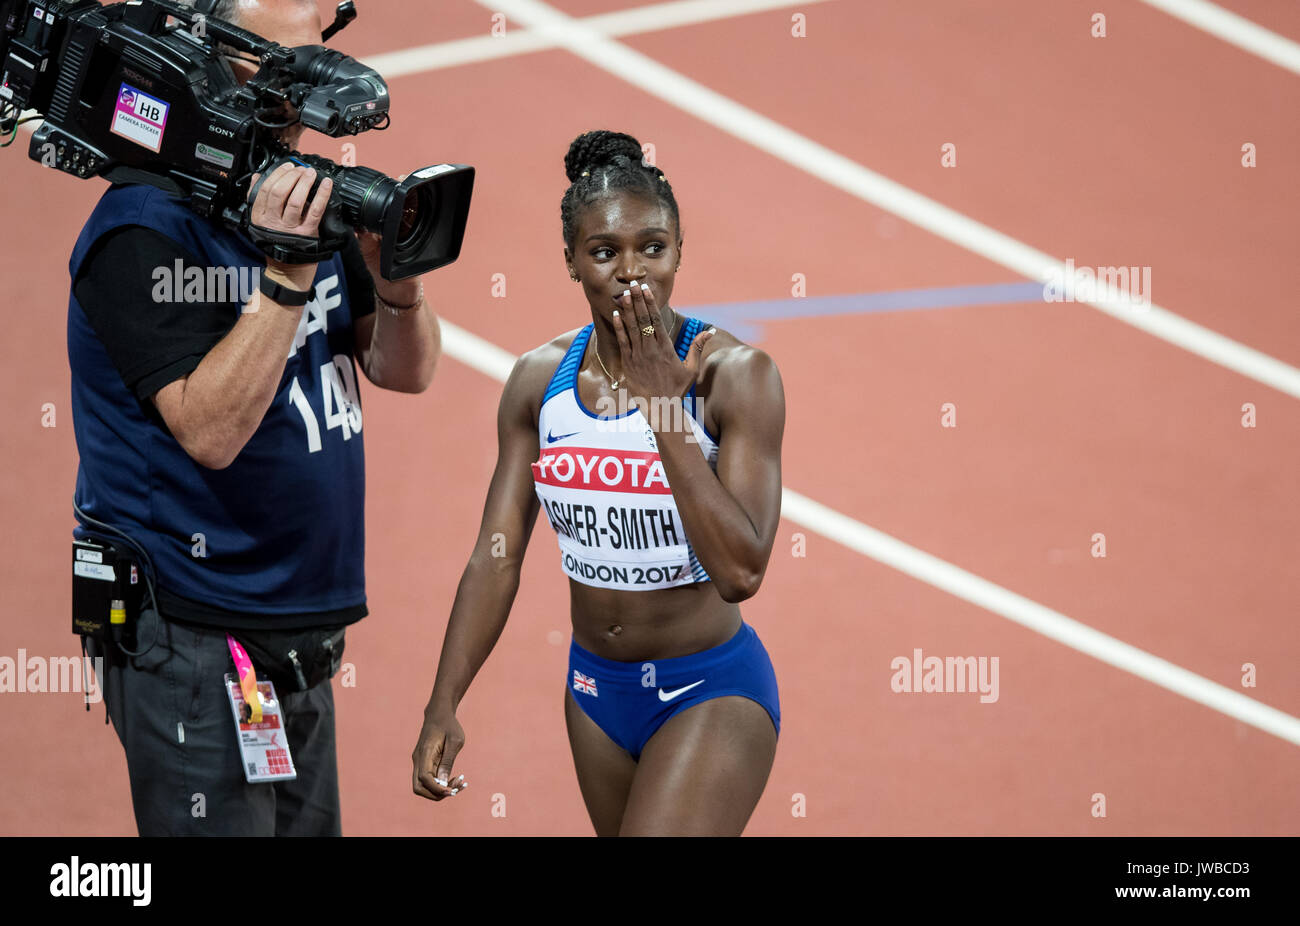 Dina ASHER-SMITH of GBR after finishing 2nd in her heat of the 200m semi final in a time of 22.73 (season best) during the IAAF World Athletics Champi - Stock Image